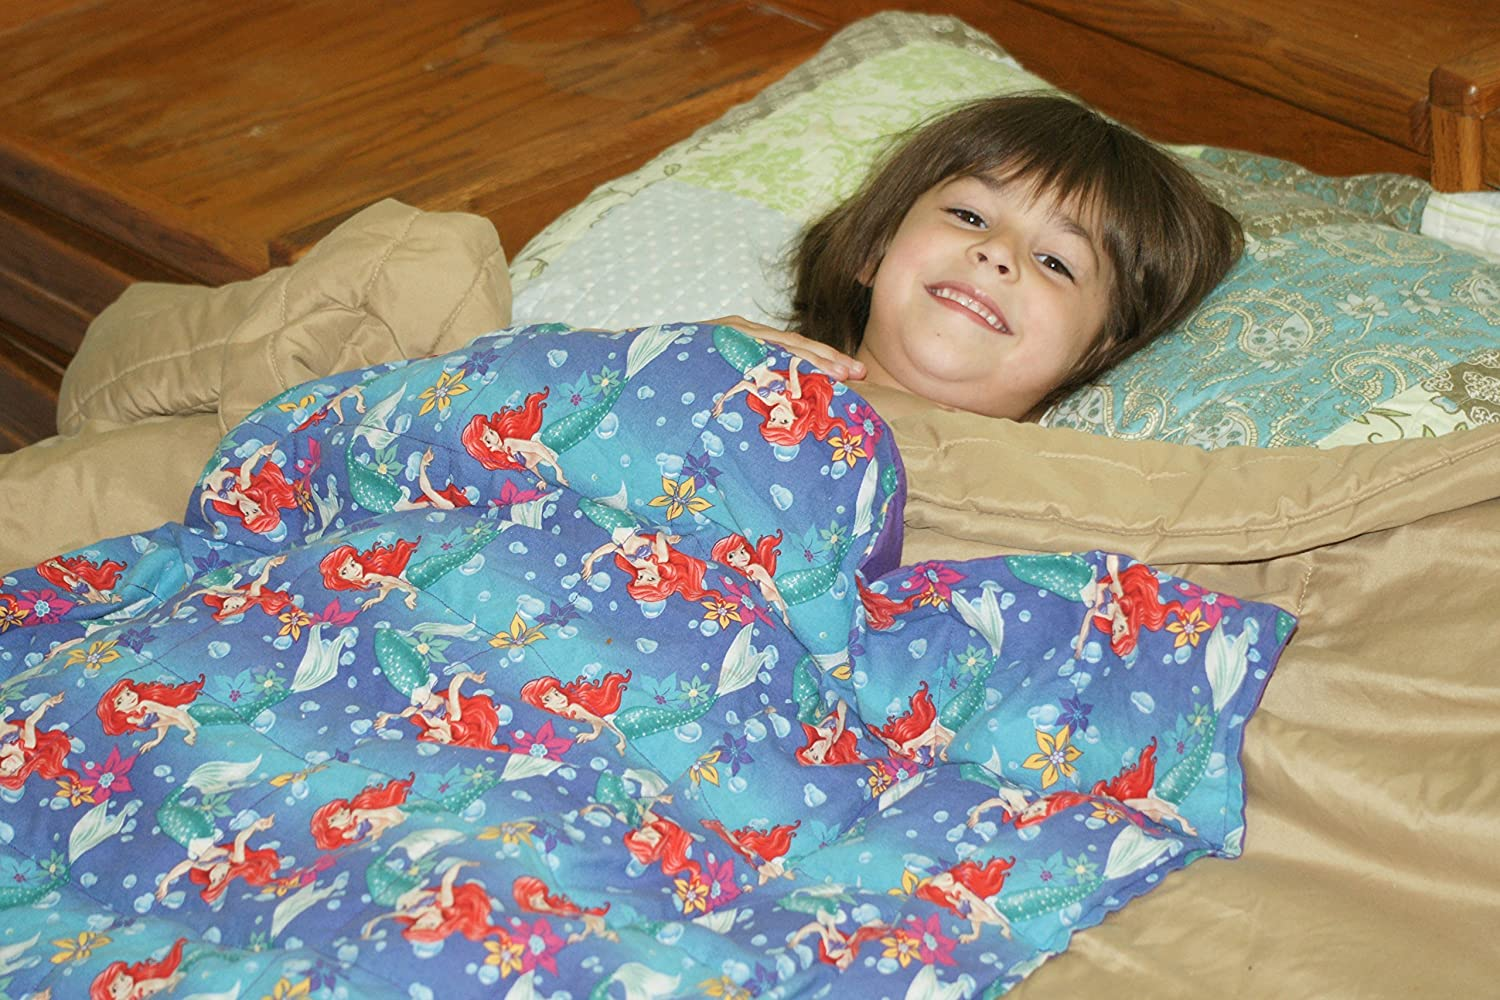 Custom Weighted Blanket Multiple Size Options (helps with sensory conditions) Solid Colors Only Couverture pondérée personnalisée, Options de taille multiple, Seule couleur solide